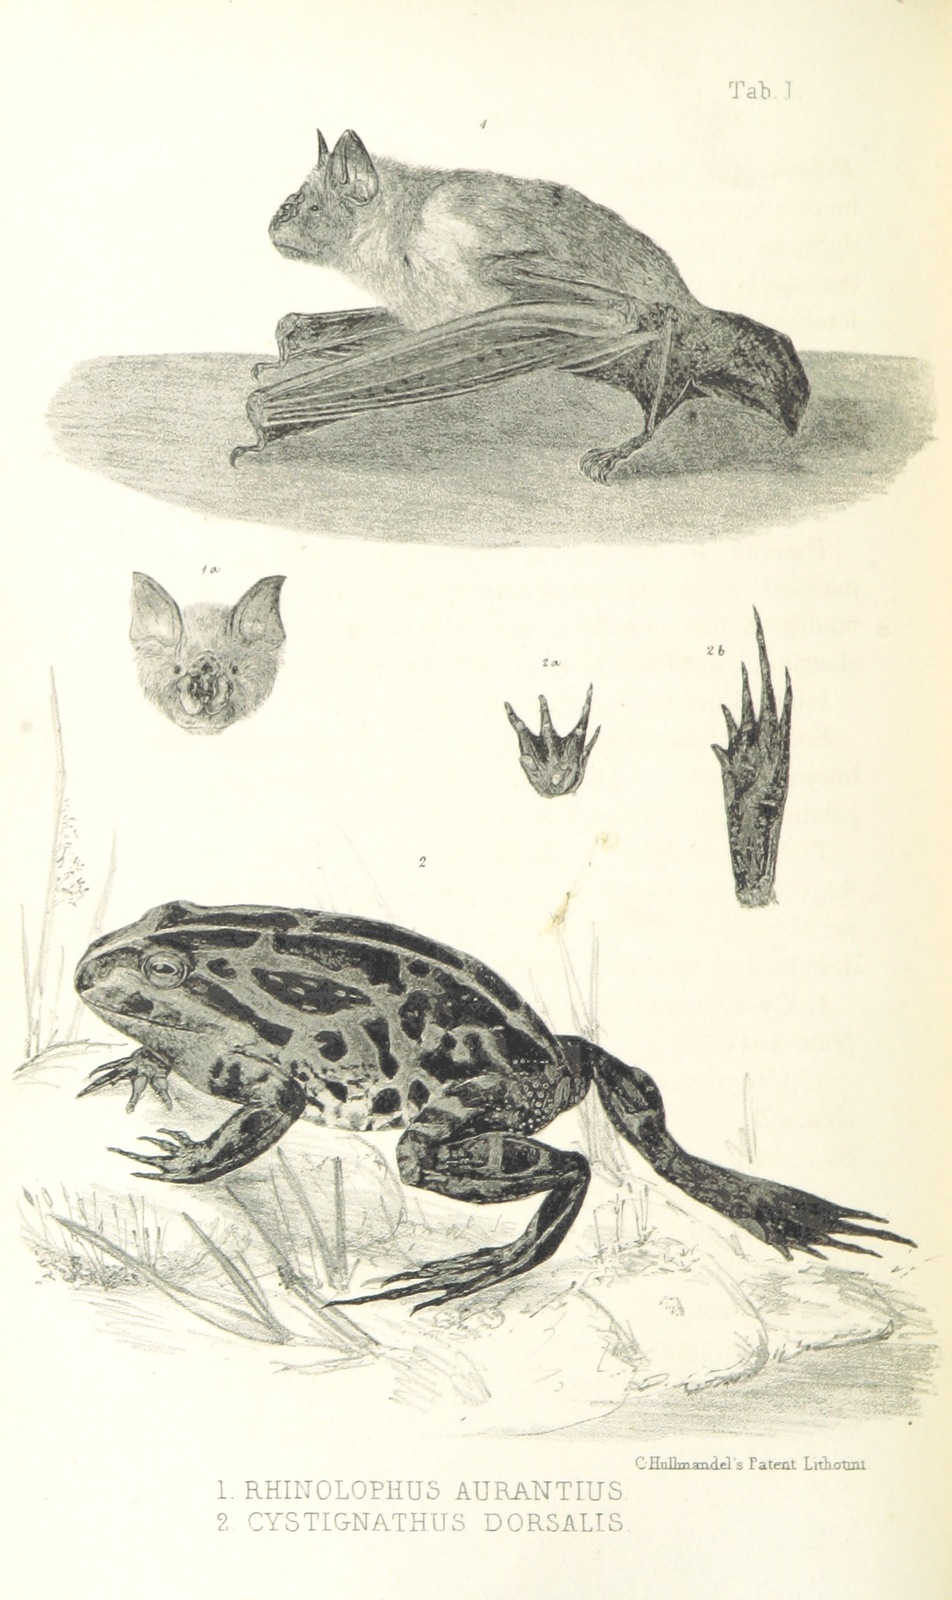 """bat from """"Journals of Expeditions of discovery into Central Australia, and overland from Adelaide to King George's Sound, in 1840-1, including an account of the manners and customs of the Aborigines, and the state of their relations with Europeans"""""""